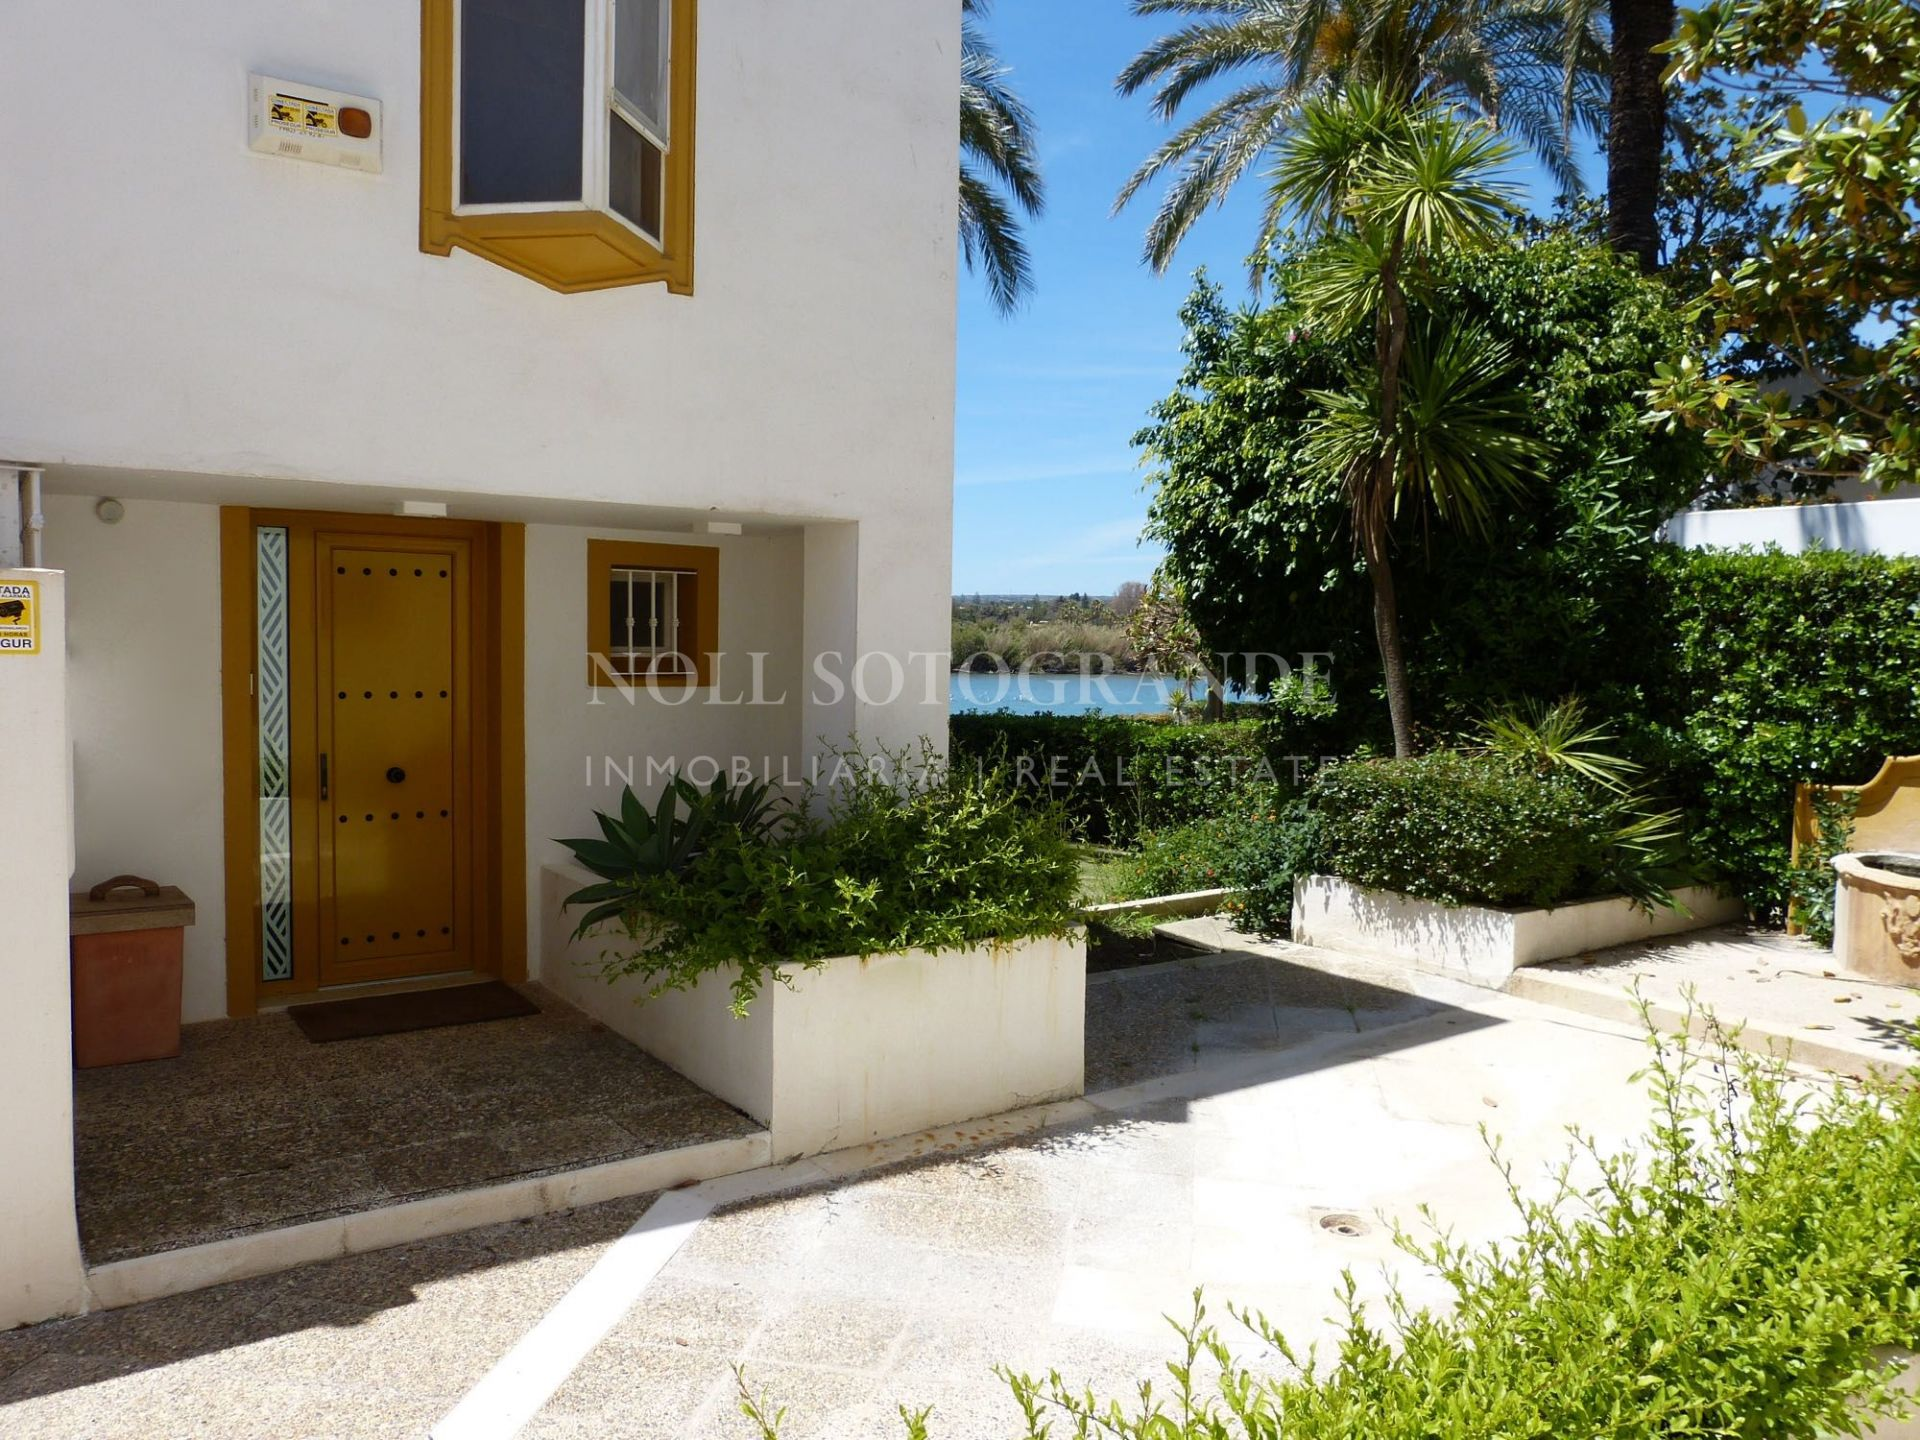 Refurbished townhouse by the sea- Sotogrande Beach